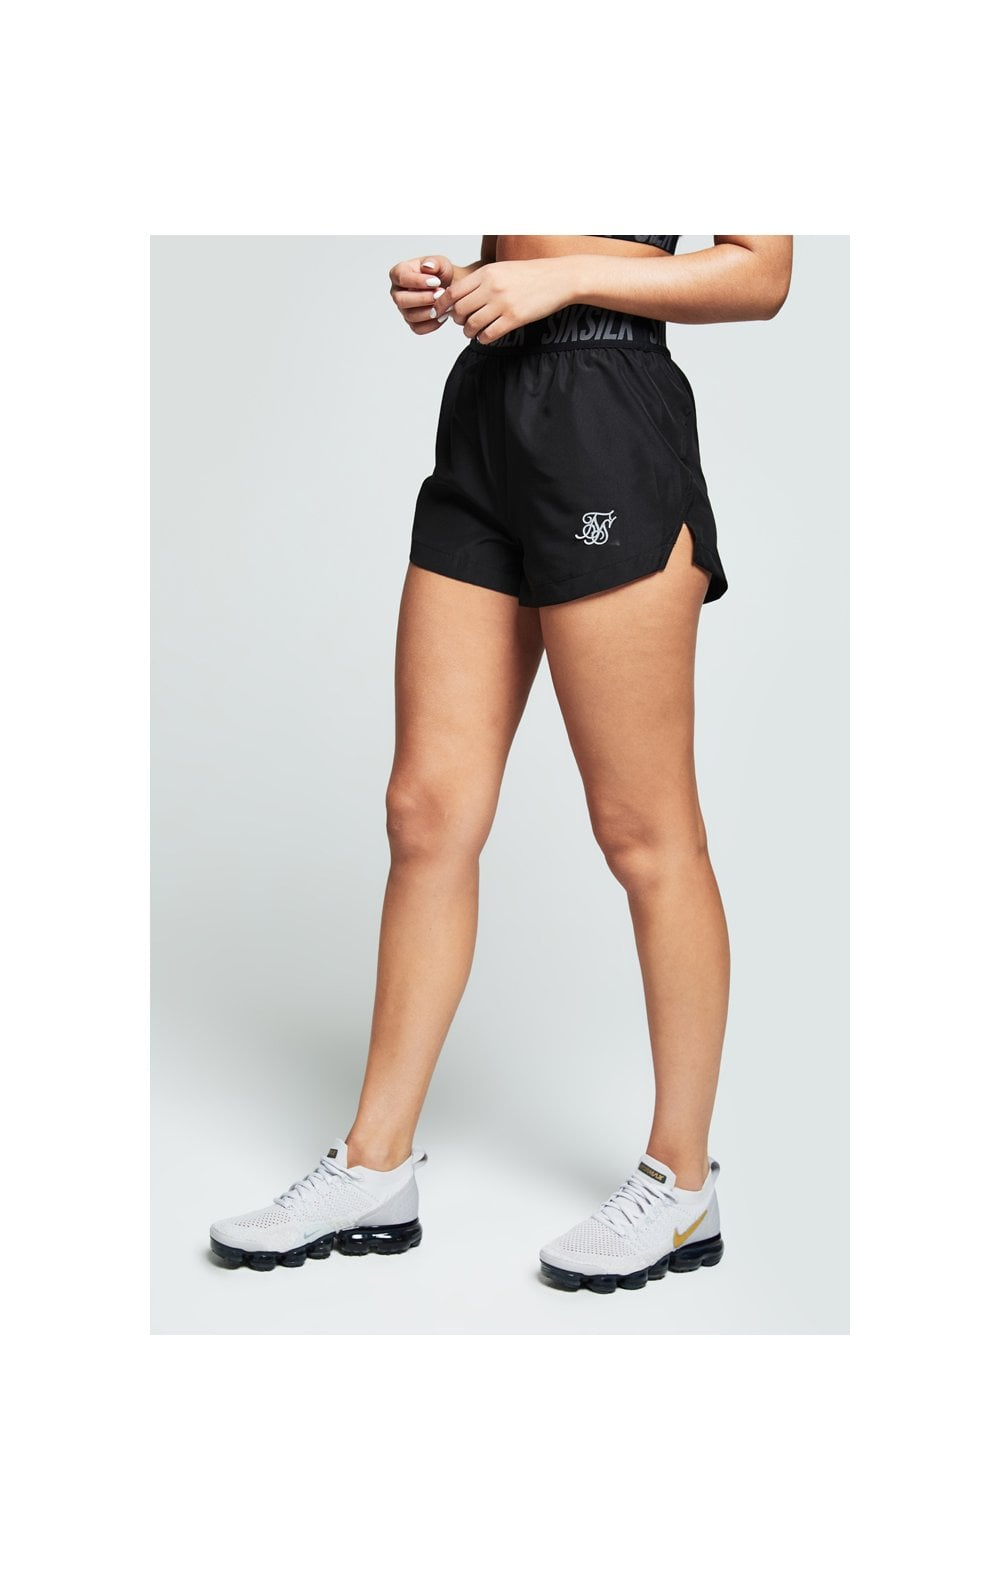 Load image into Gallery viewer, SikSilk Tape Gym Runner Shorts Black (3)